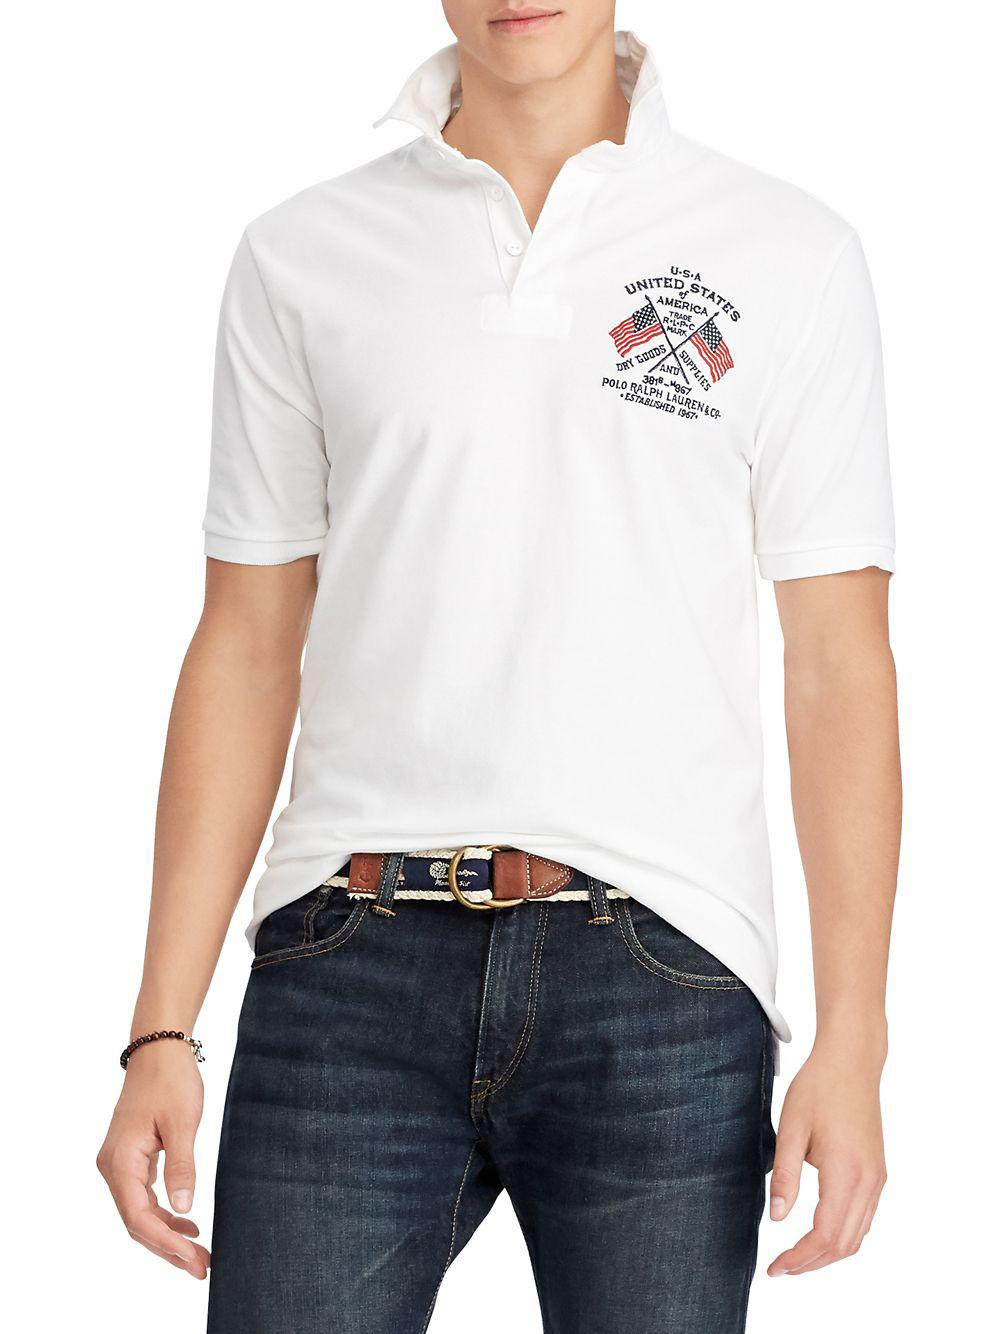 2a4bf0b5808 Lyst - Polo Ralph Lauren Classic-fit Mesh Rugby Shirt in White for Men